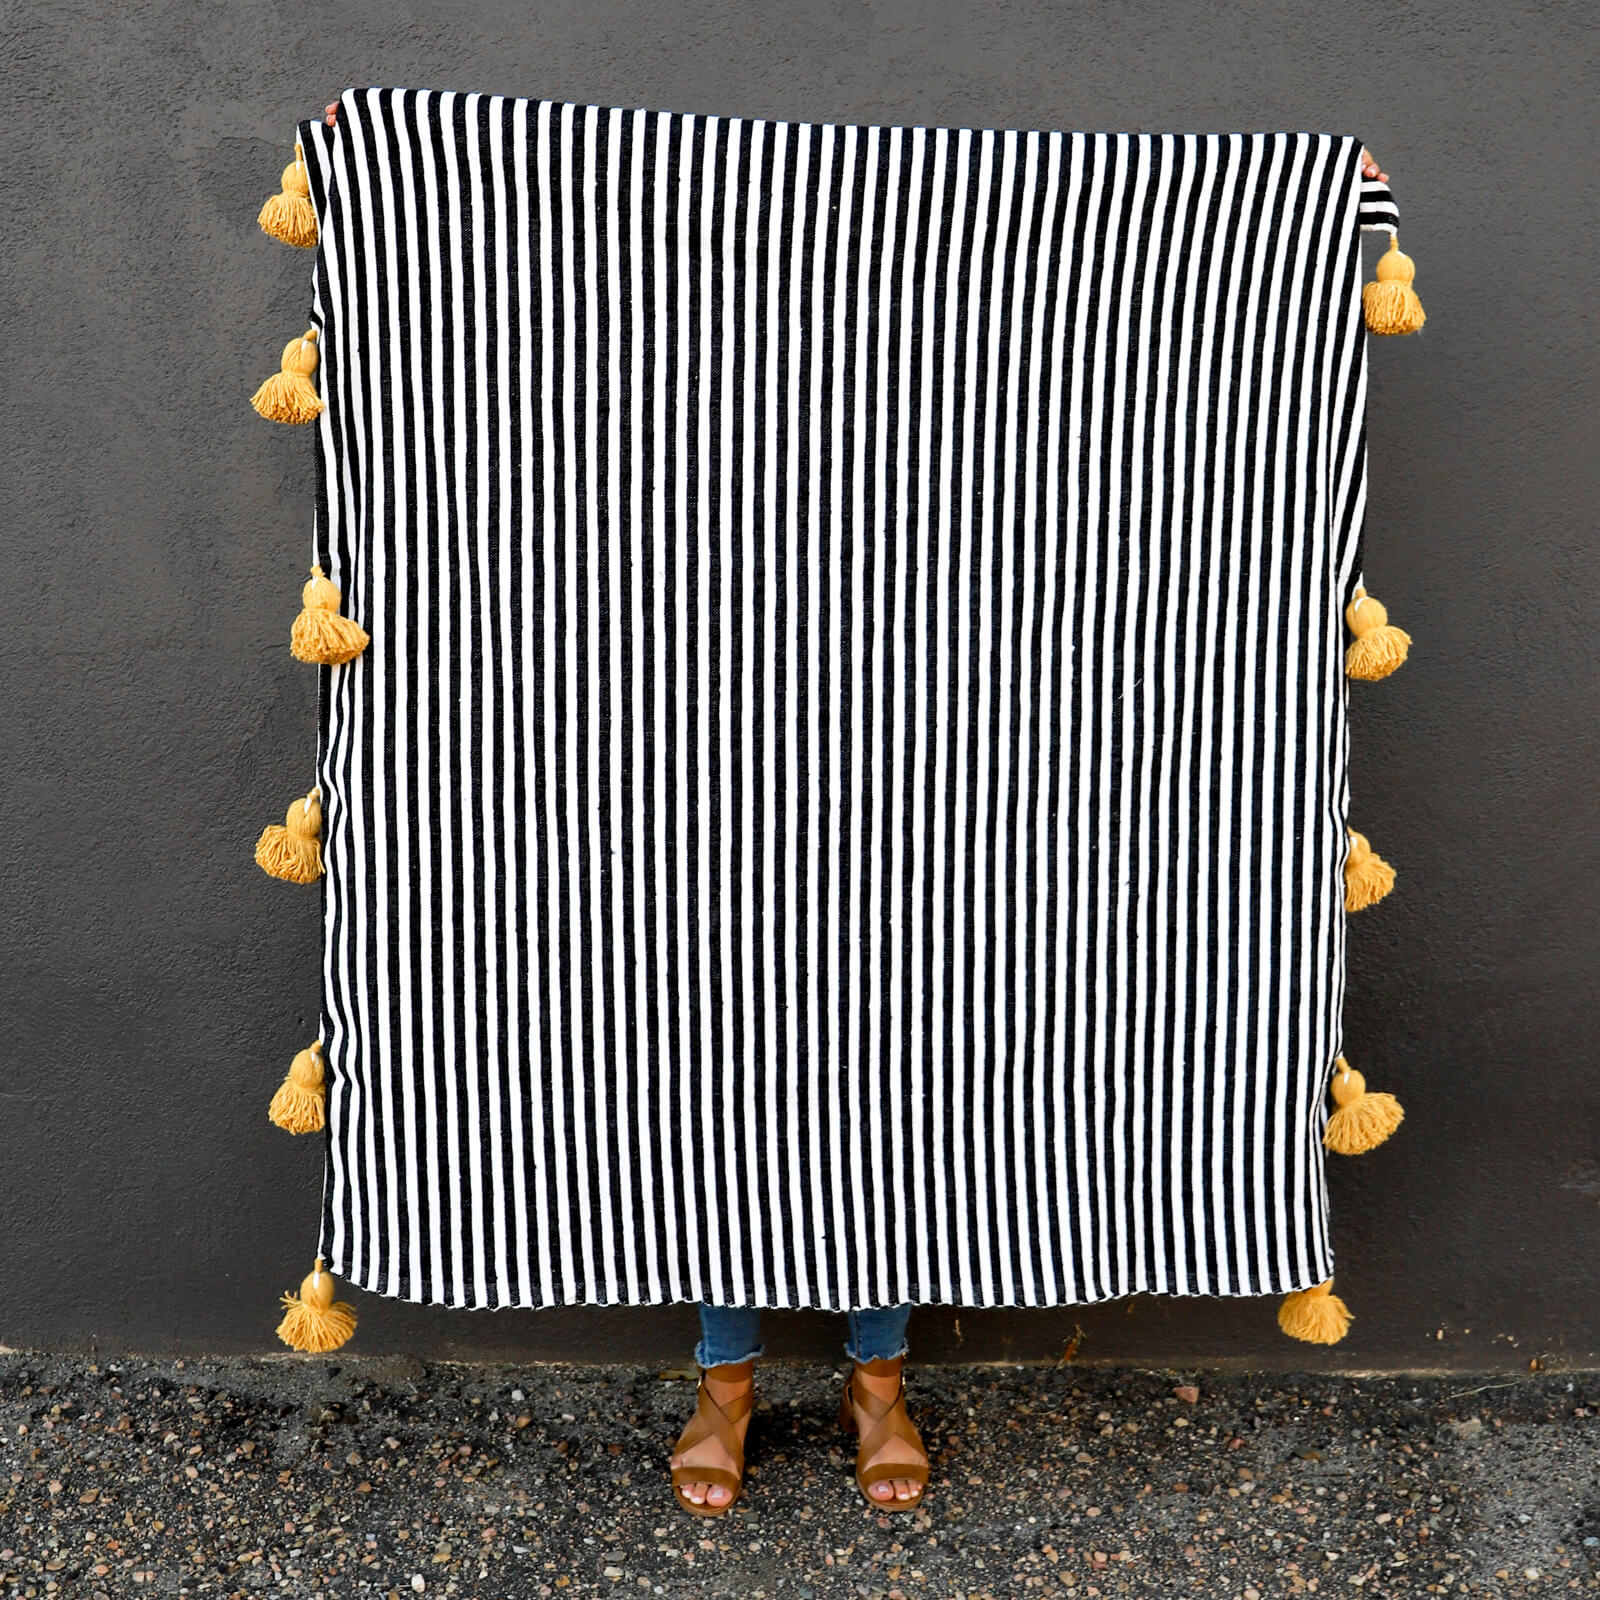 Authentic Hand Woven Moroccan Throw Blanket with Tassels - Black, White and Yellow